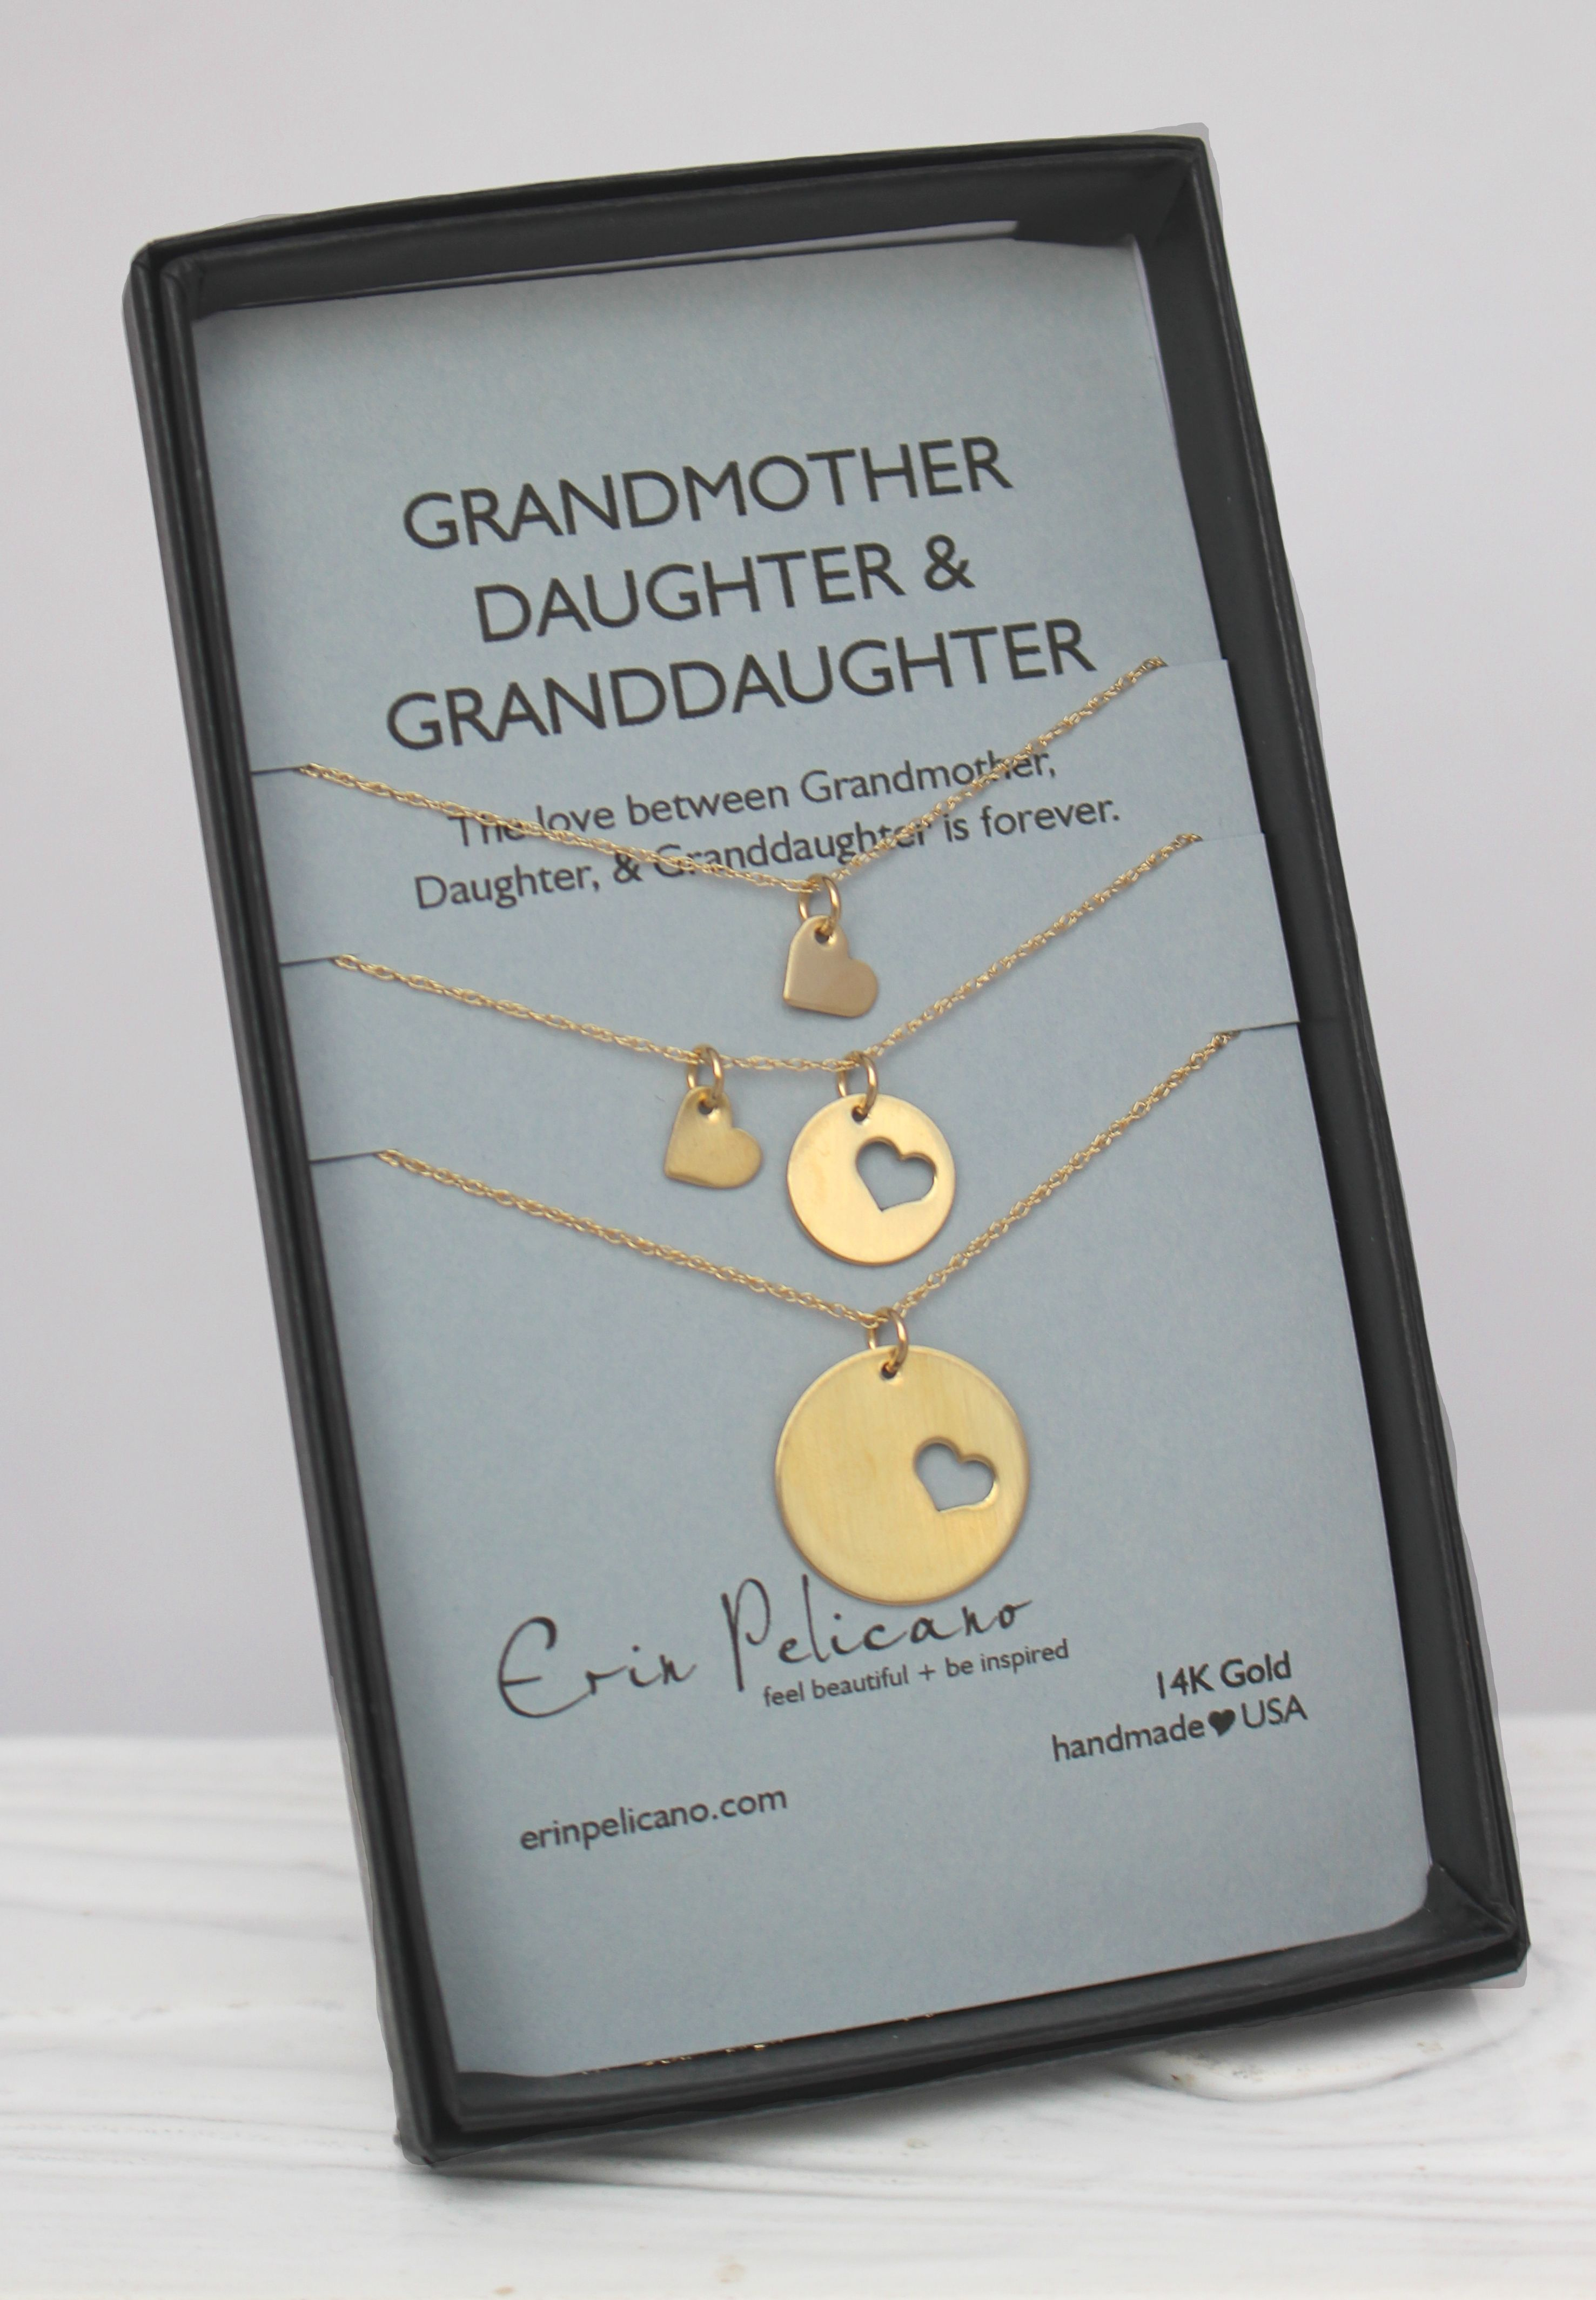 14k Gold Grandmother Daughter Necklace Set Erin Pelicano Daughter Necklace Set Granddaughter Necklace Mother Daughter Jewelry